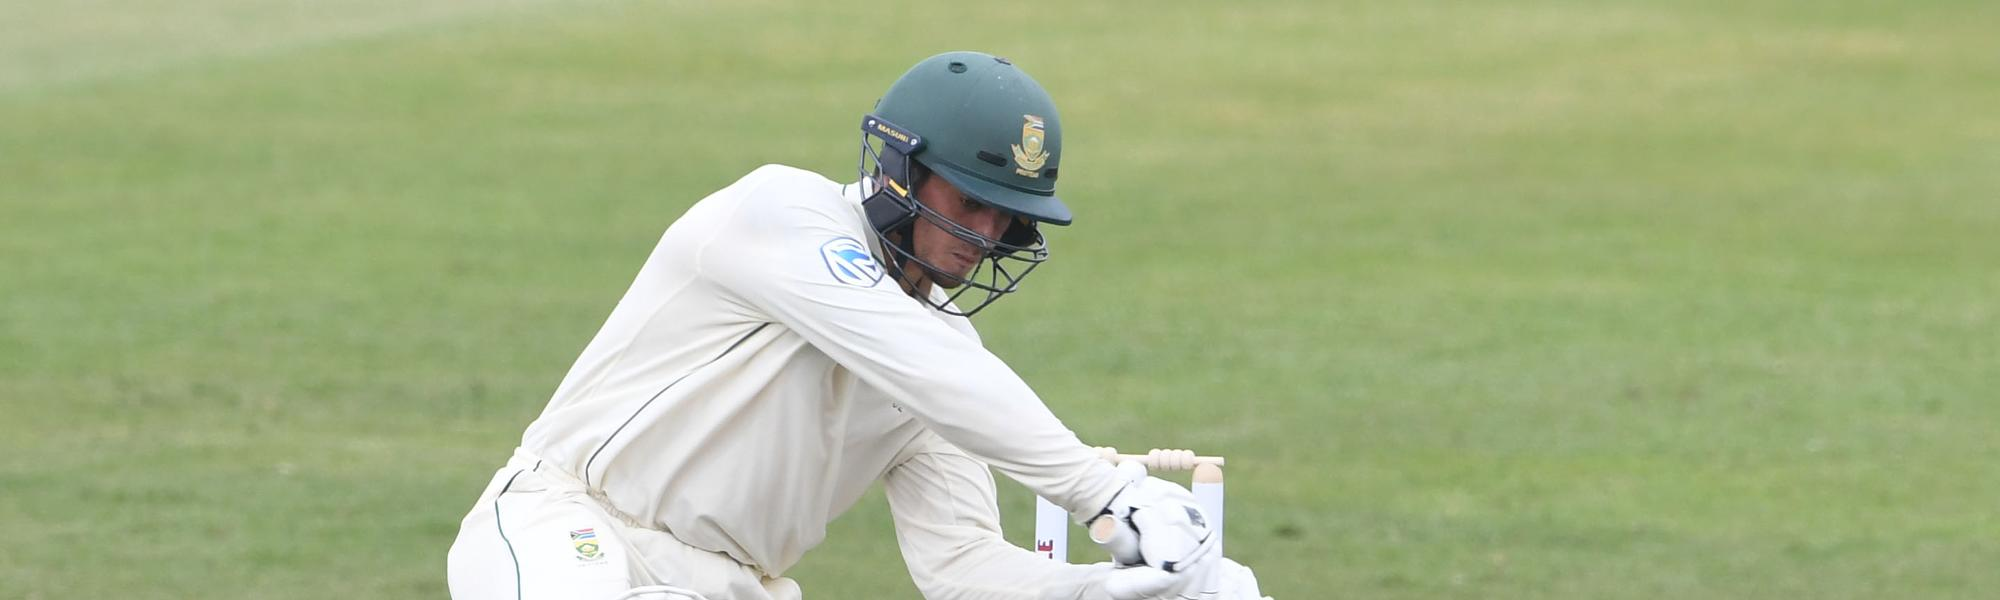 De Kock hit eight fours and one six in his 94-ball stay at the crease